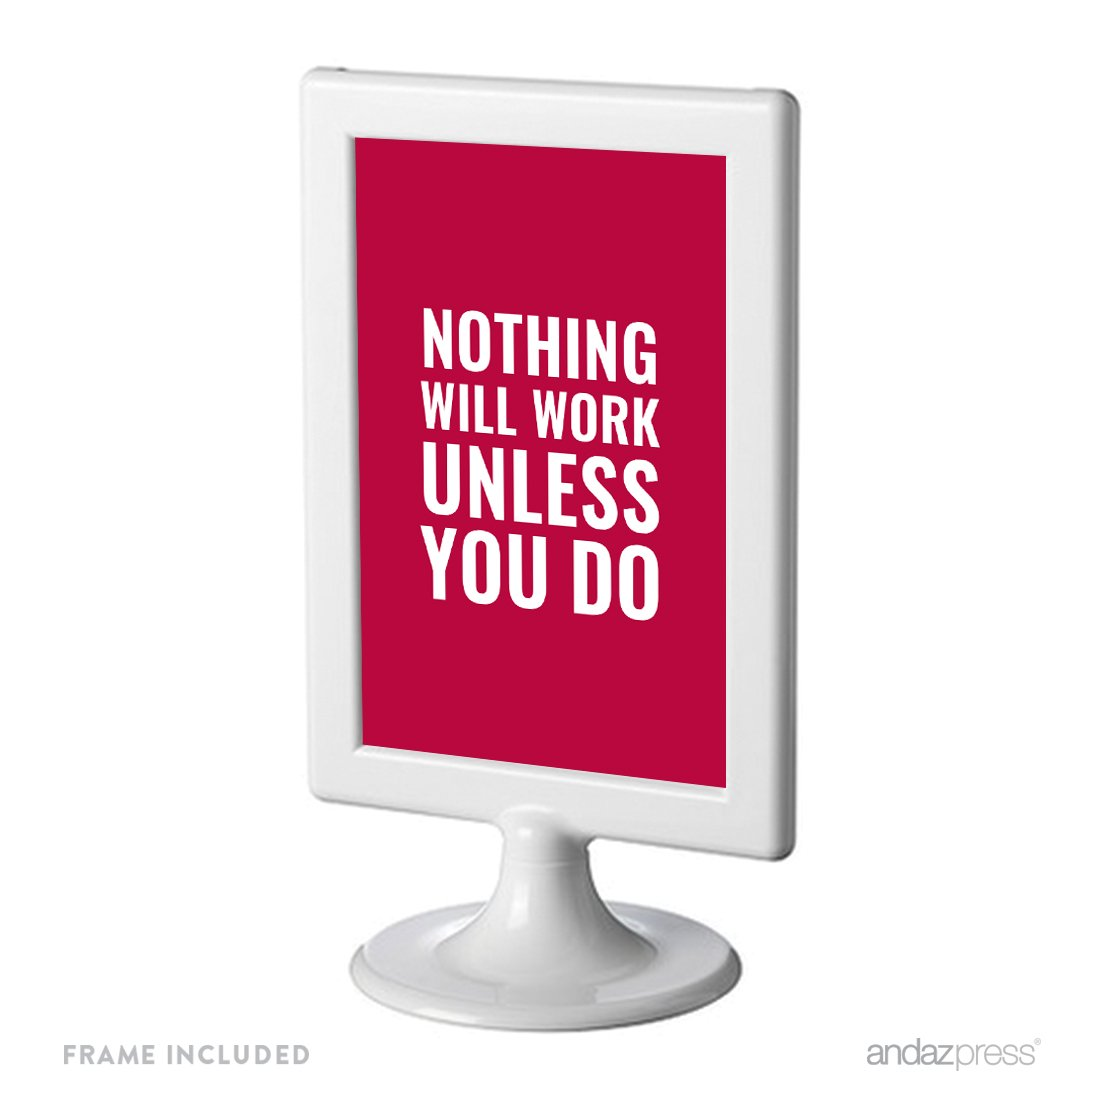 Andaz Press Office Framed Desk Art, Nothing Will Work Unless You Do, 4x6-inch Inspirational Funny Quotes Gift Print, 1-Pack, Includes Frame